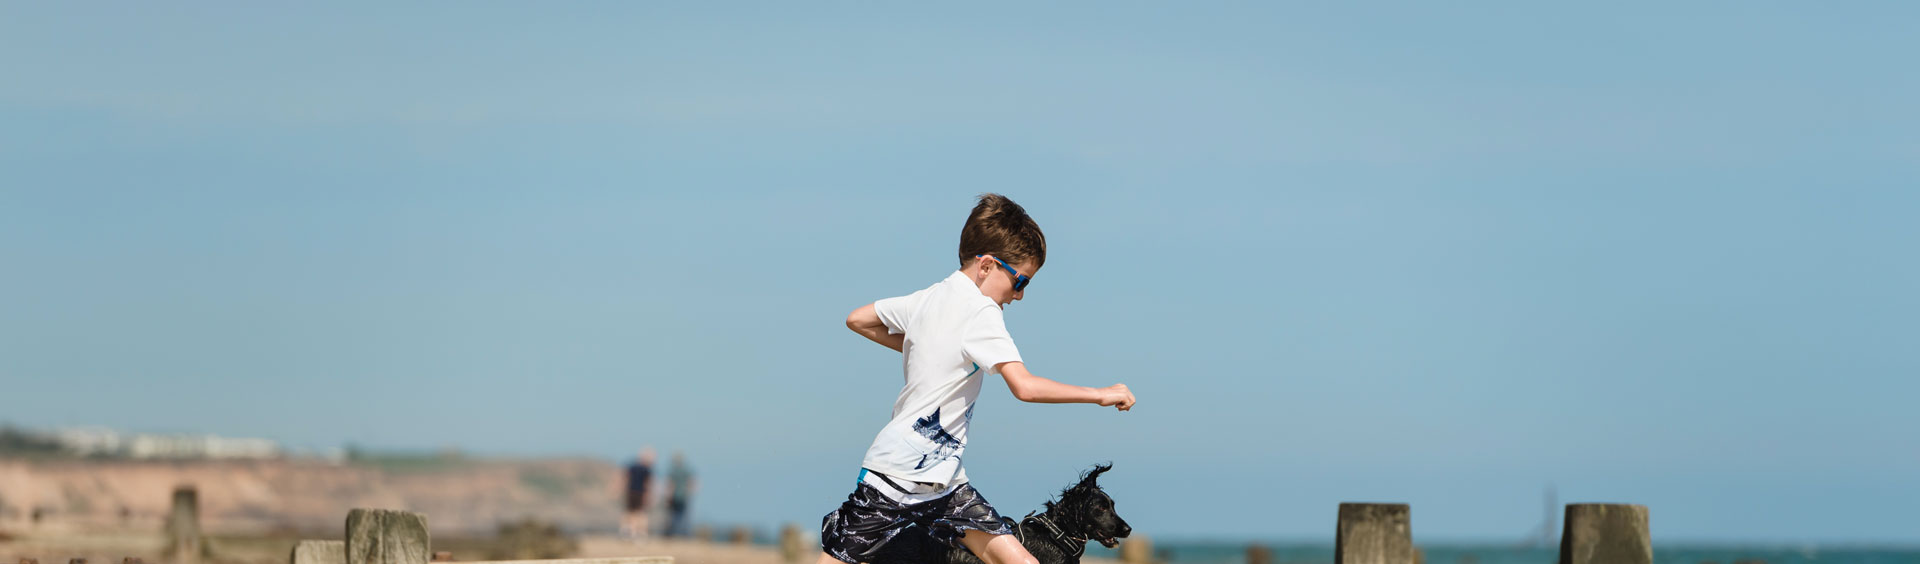 Young boy with sunglasses mid-leap